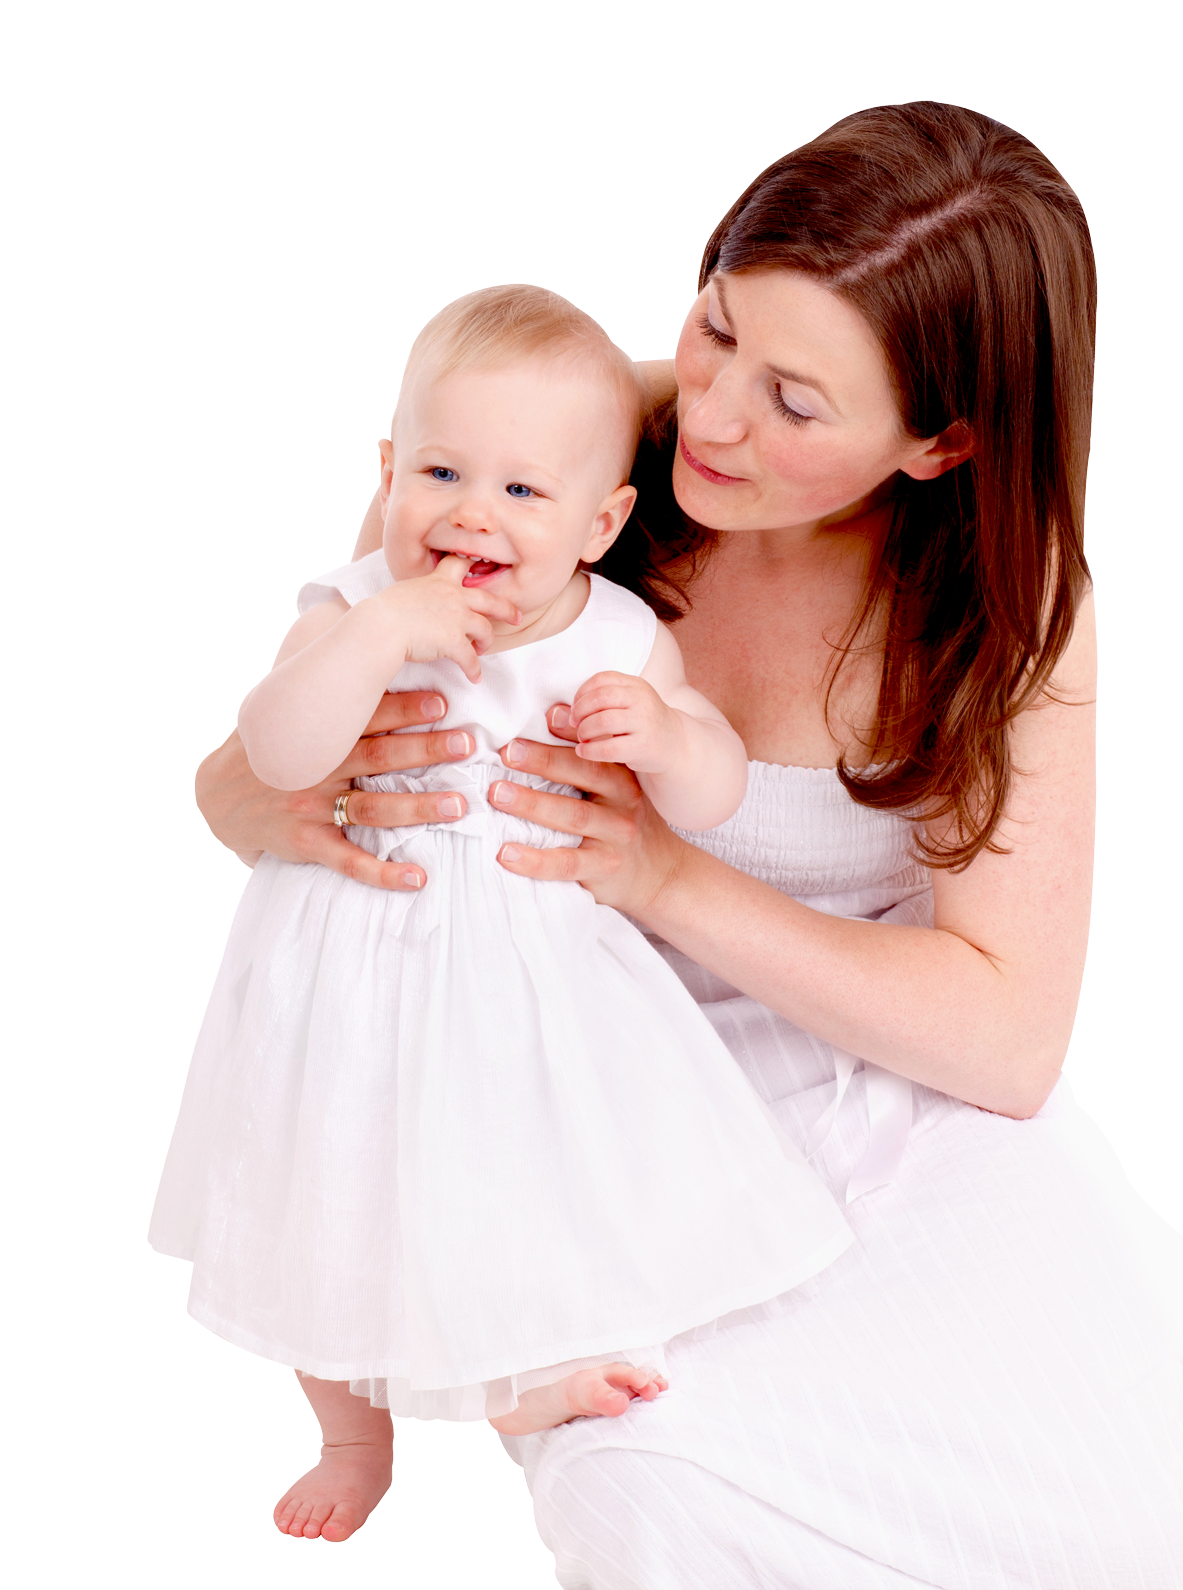 Mother With Sweet Baby Girl Png image #41511